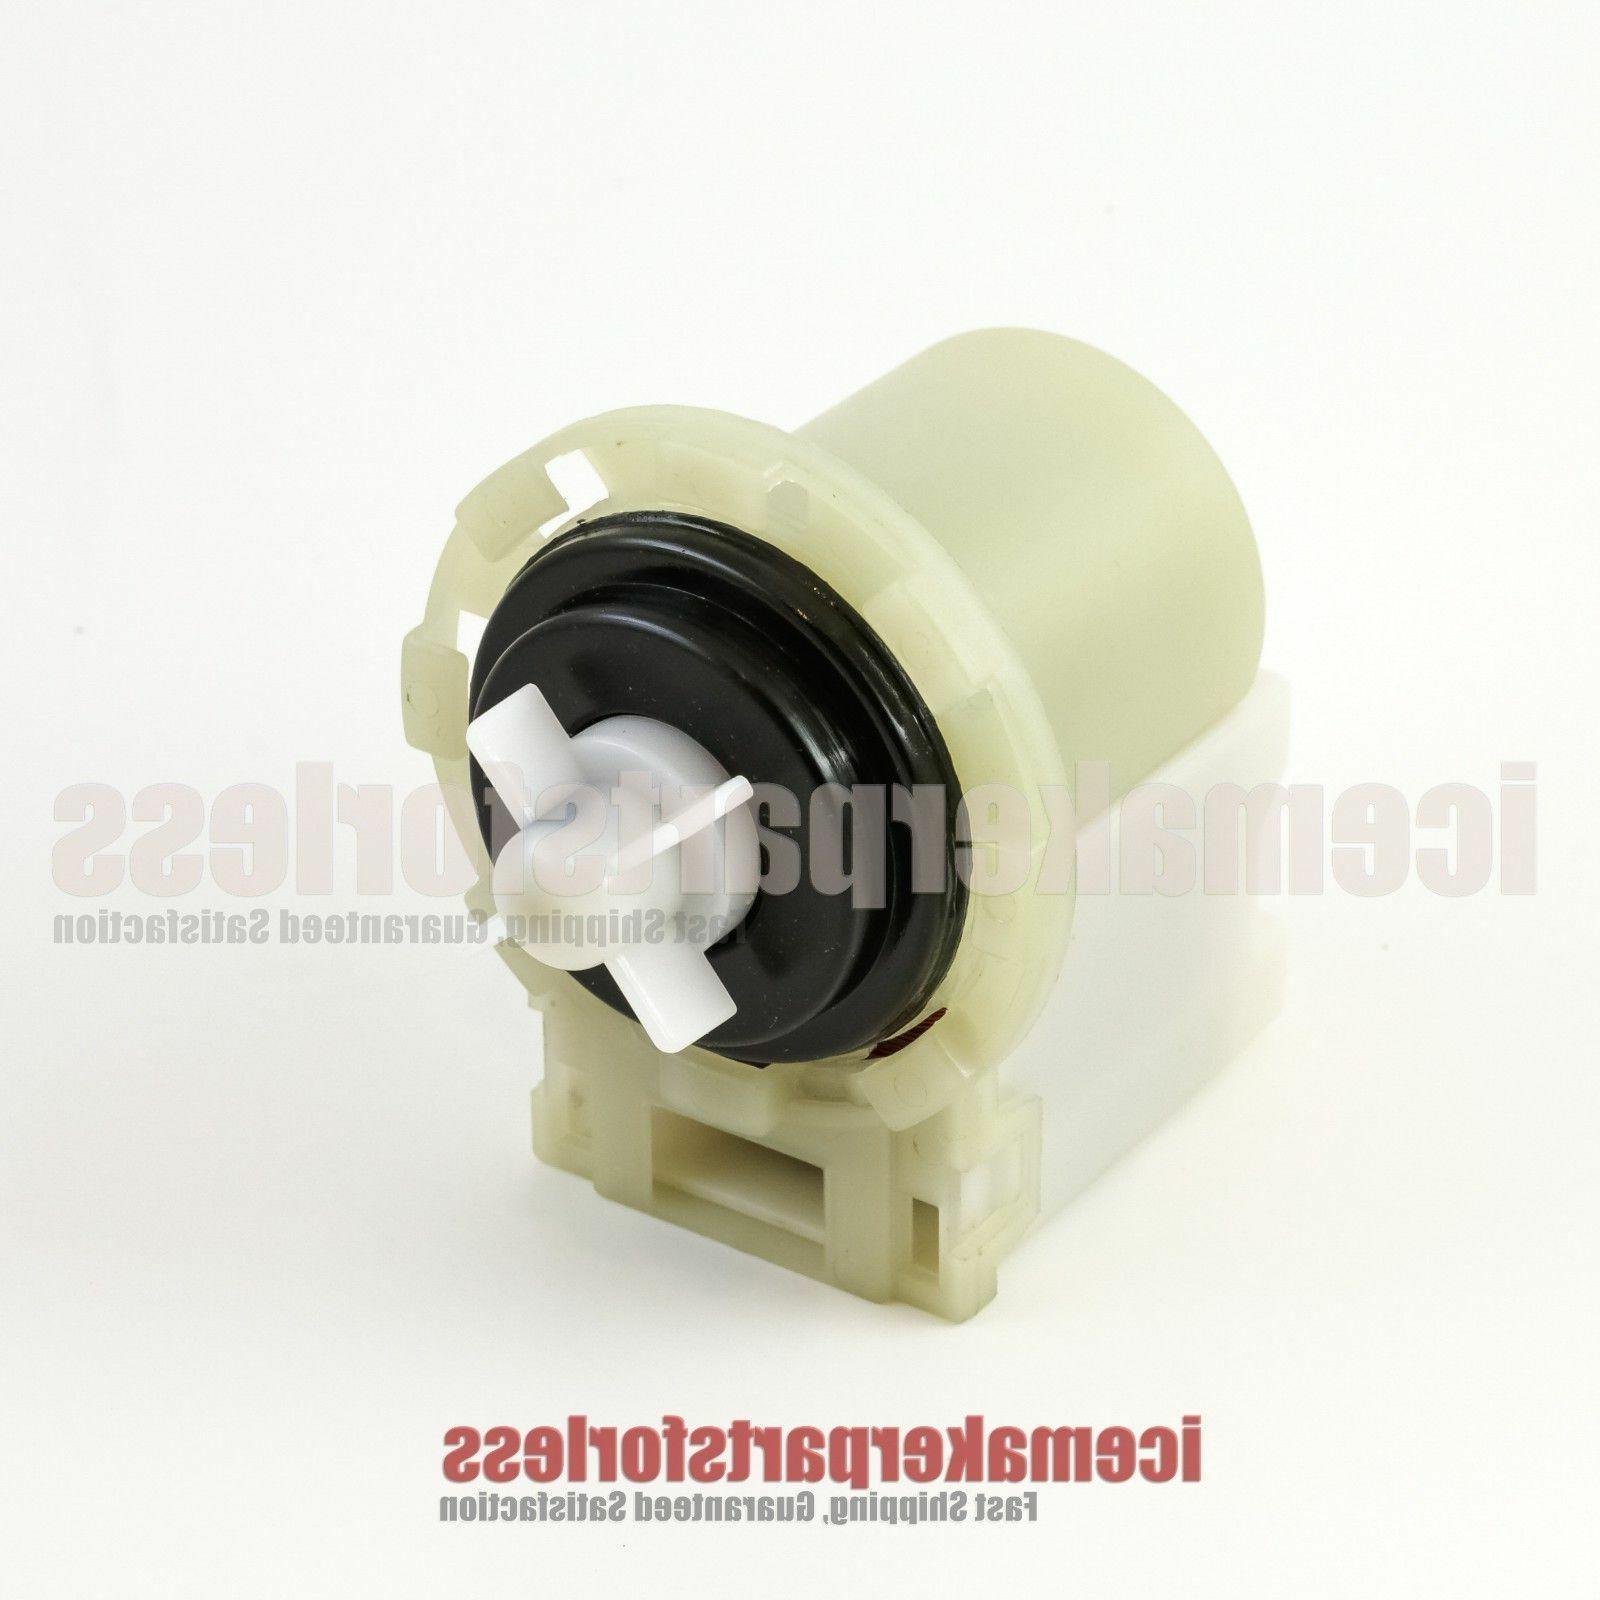 bosch 00436440 washer drain pump motor 436440